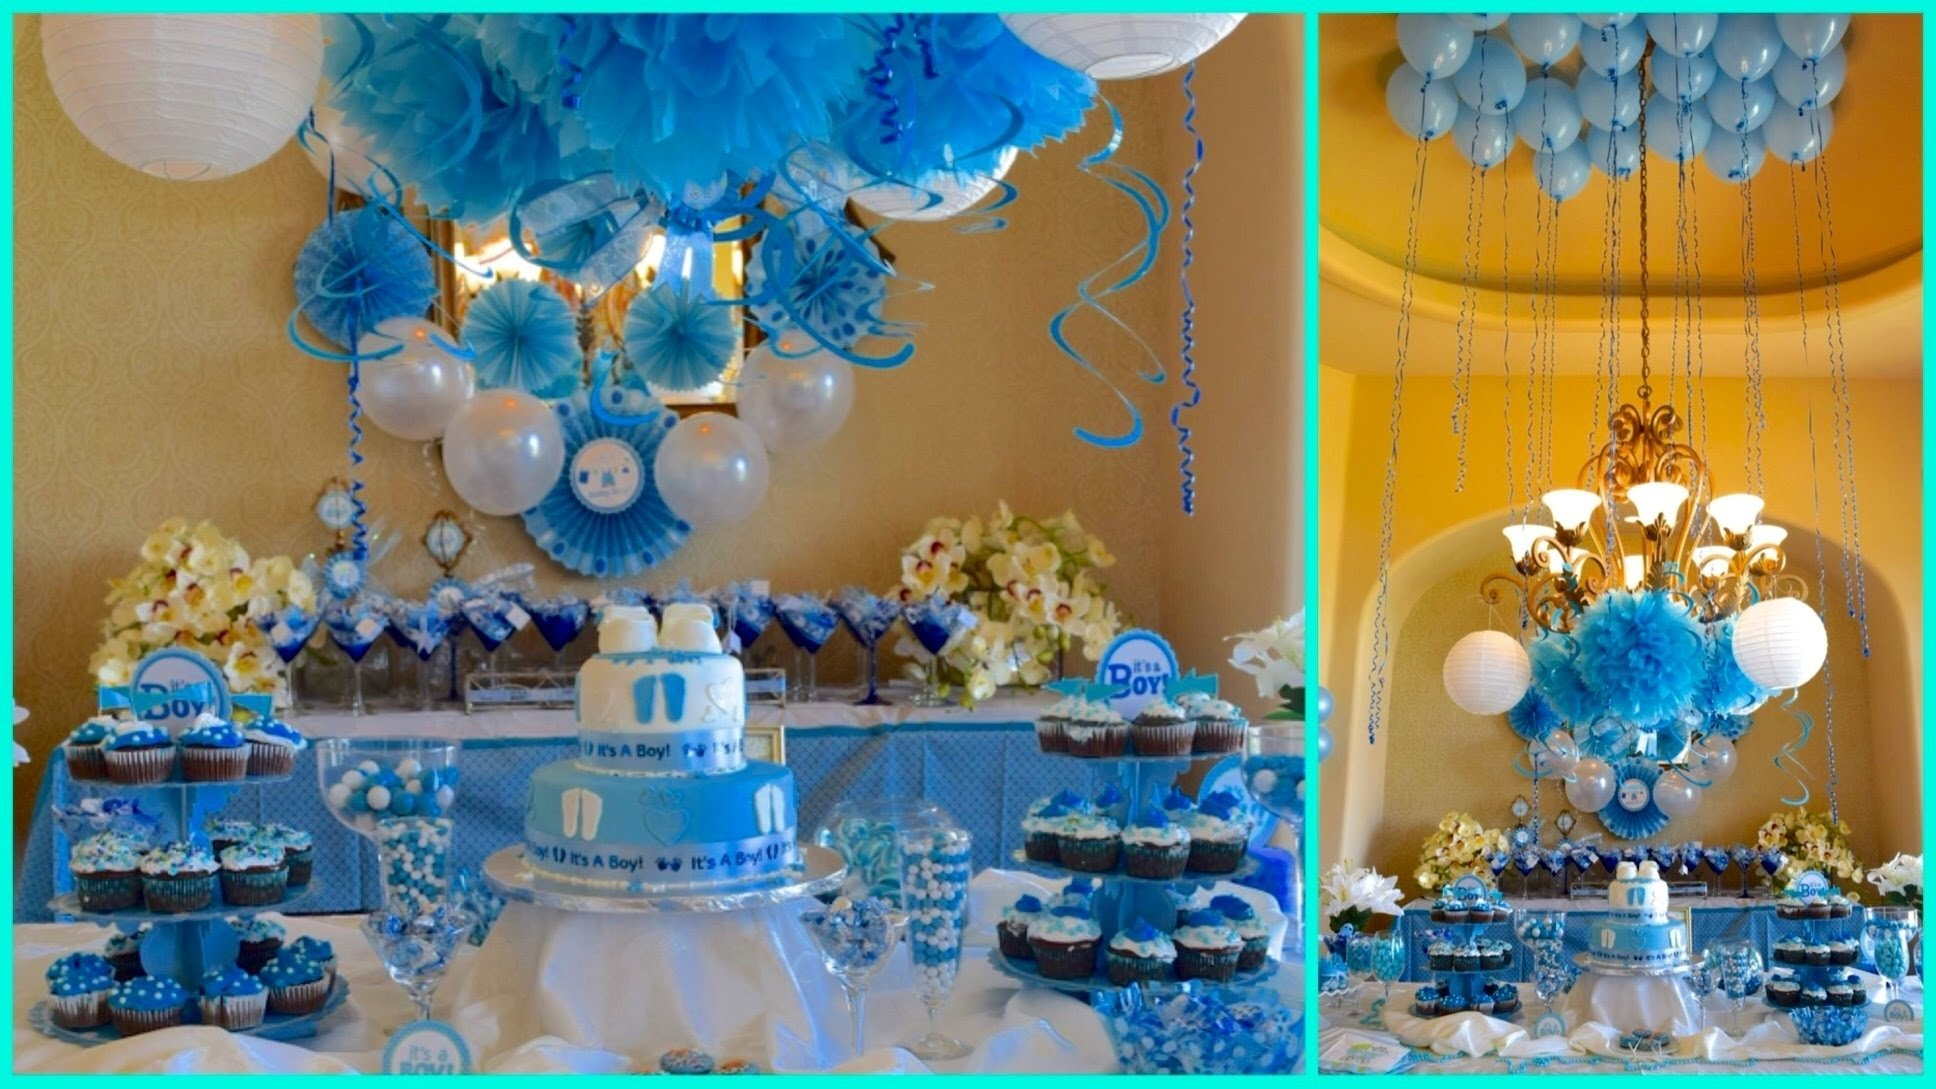 10 Fabulous Decorations For Baby Shower Ideas 19th birthday bash ideas tags 19th birthday ideas baby shower 2021